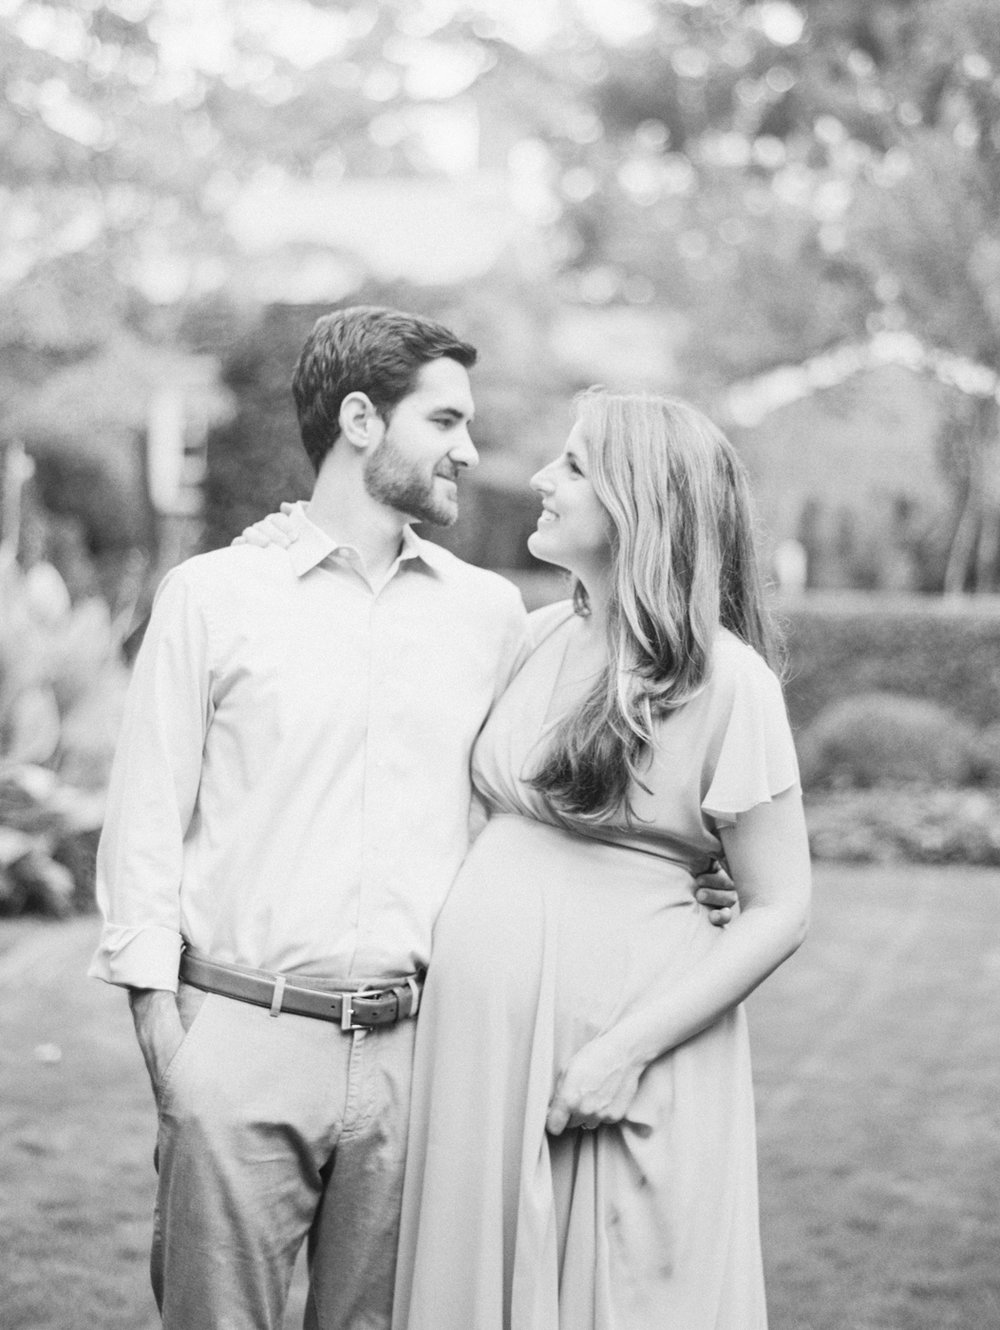 shackleford maternity four corners photography athens maternity photographer anna shackleford photography atlanta film photographer maternity photography-12.jpg